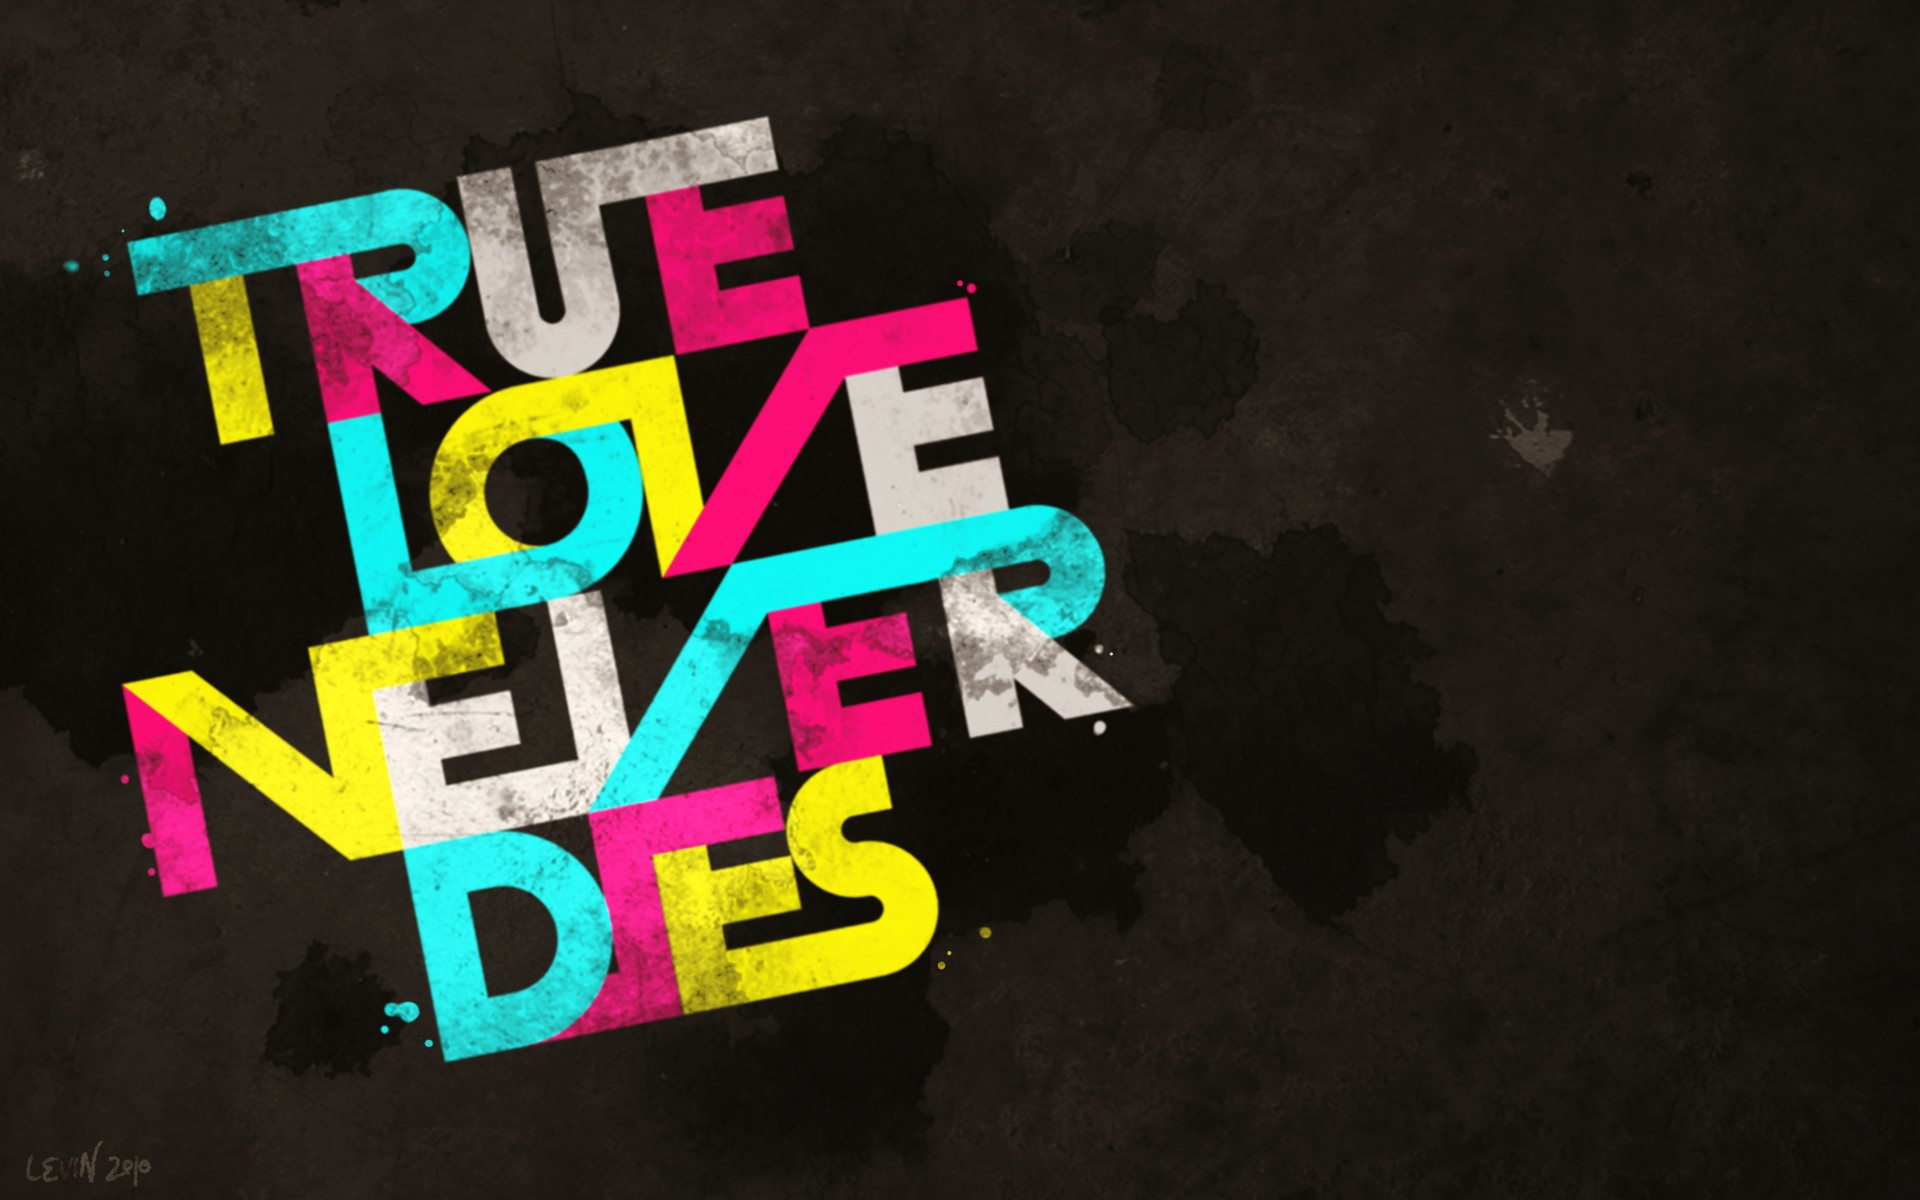 Wallpaper Of True Love   1920x1200